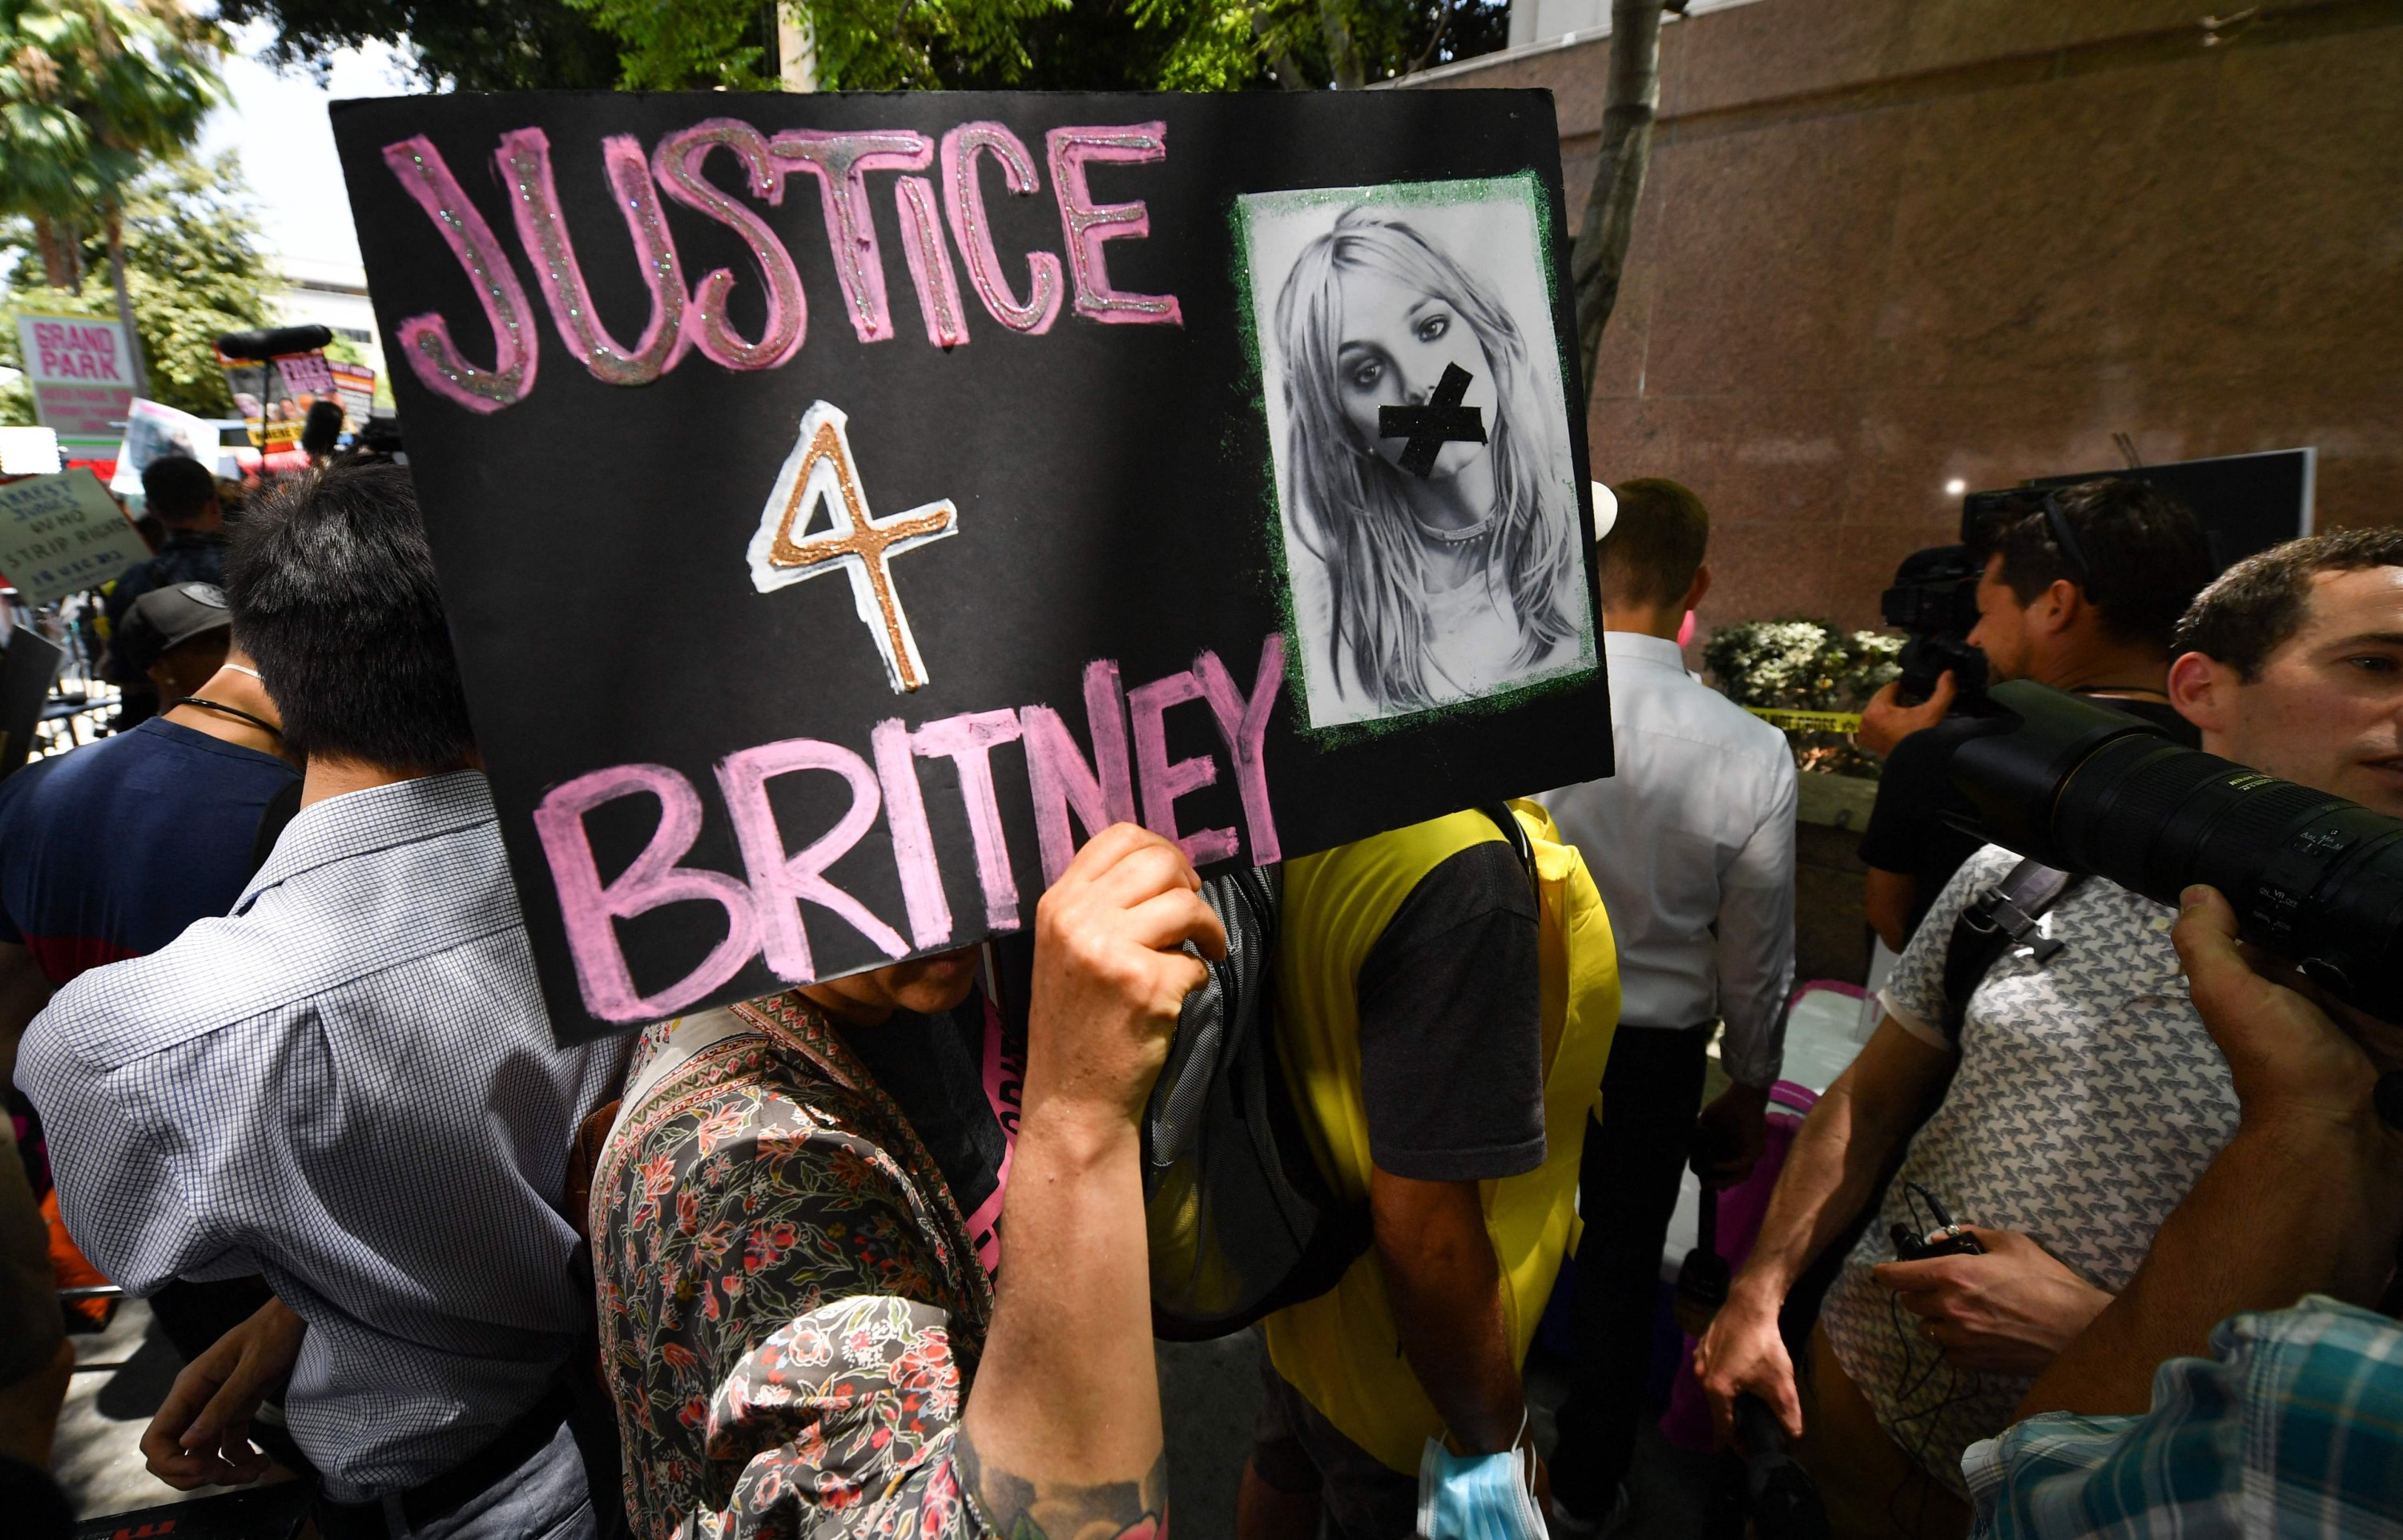 In this file photo a fan holds a poster of Britney with her mouth taped shut as supporters gather outside the Los Angeles County Courthouse in Los Angeles on July 14, 2021, during a scheduled hearing in the Britney Spears guardianship case. (AFP Photo)